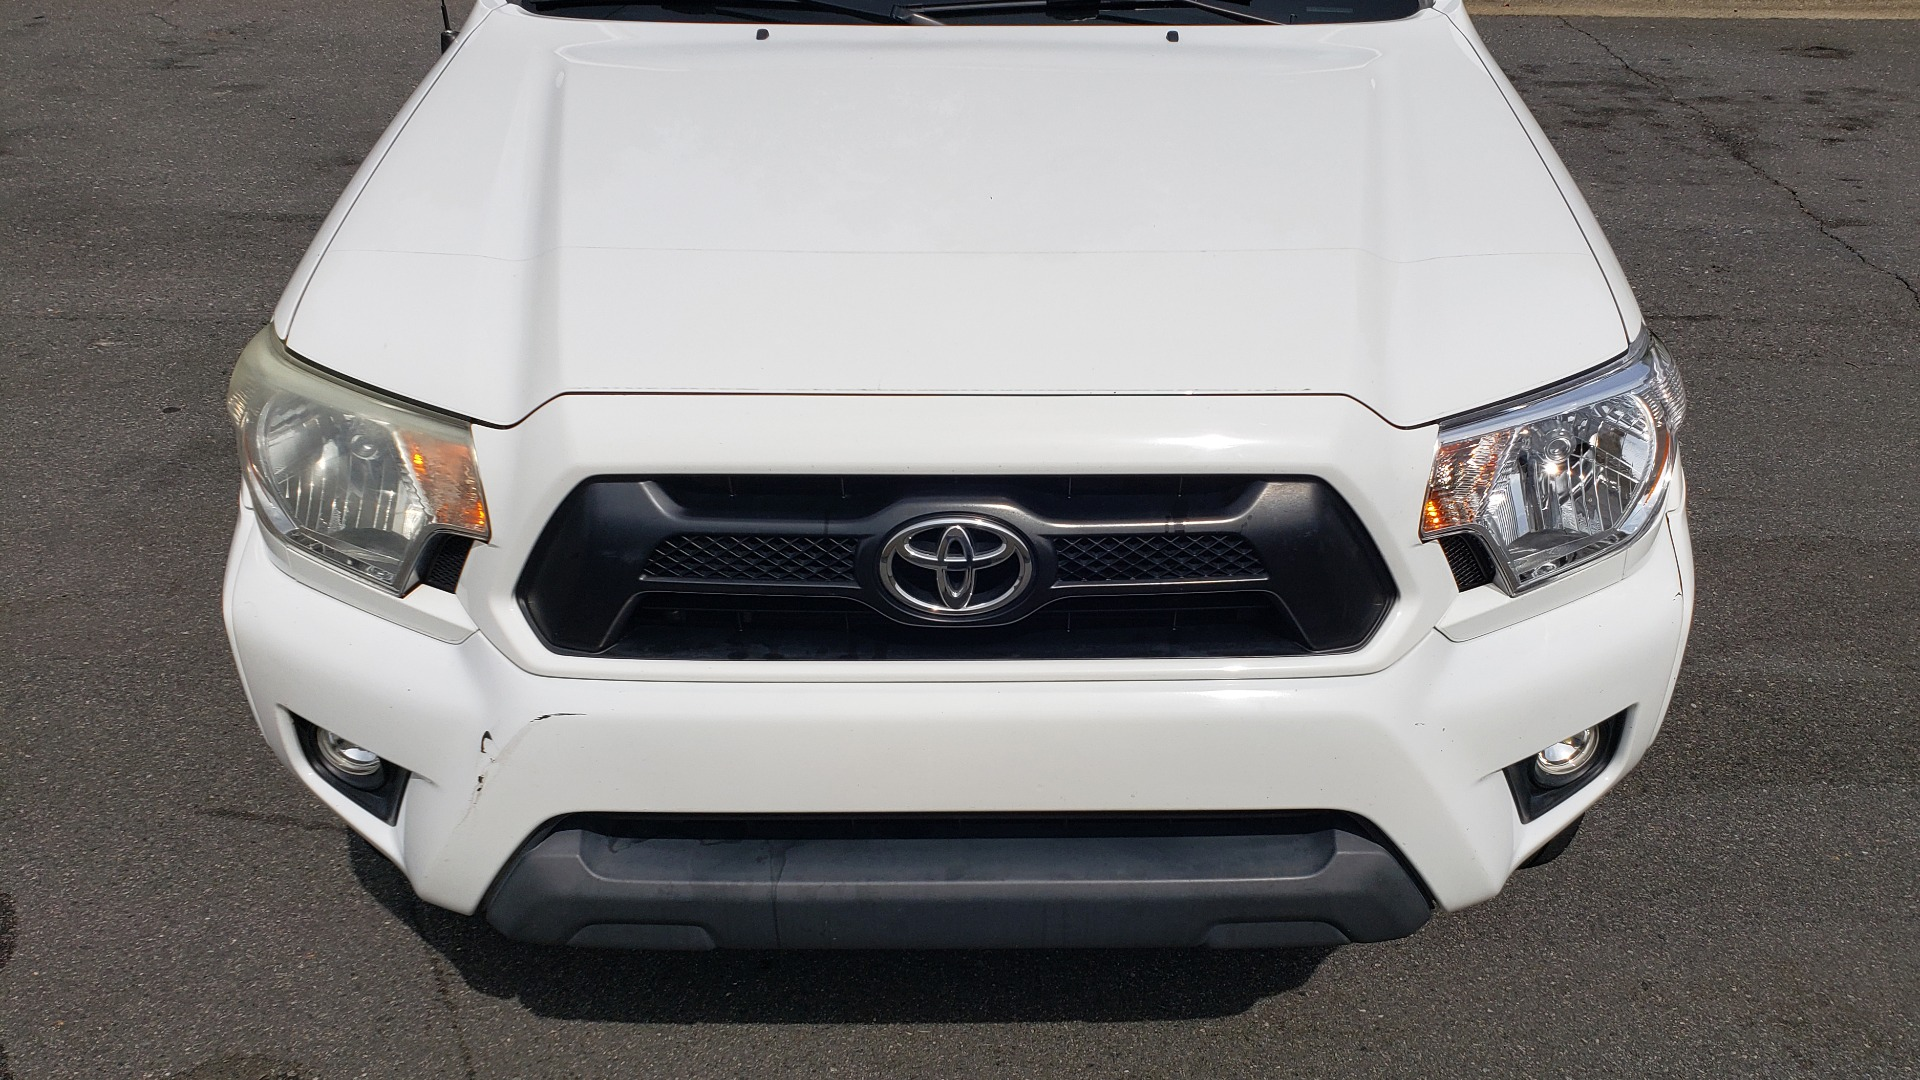 Used 2015 Toyota TACOMA PRERUNNER DOUBLE CAB/ 4-CYL / 4-SPD AUTO / SR PKG / CONV PKG for sale $15,995 at Formula Imports in Charlotte NC 28227 19